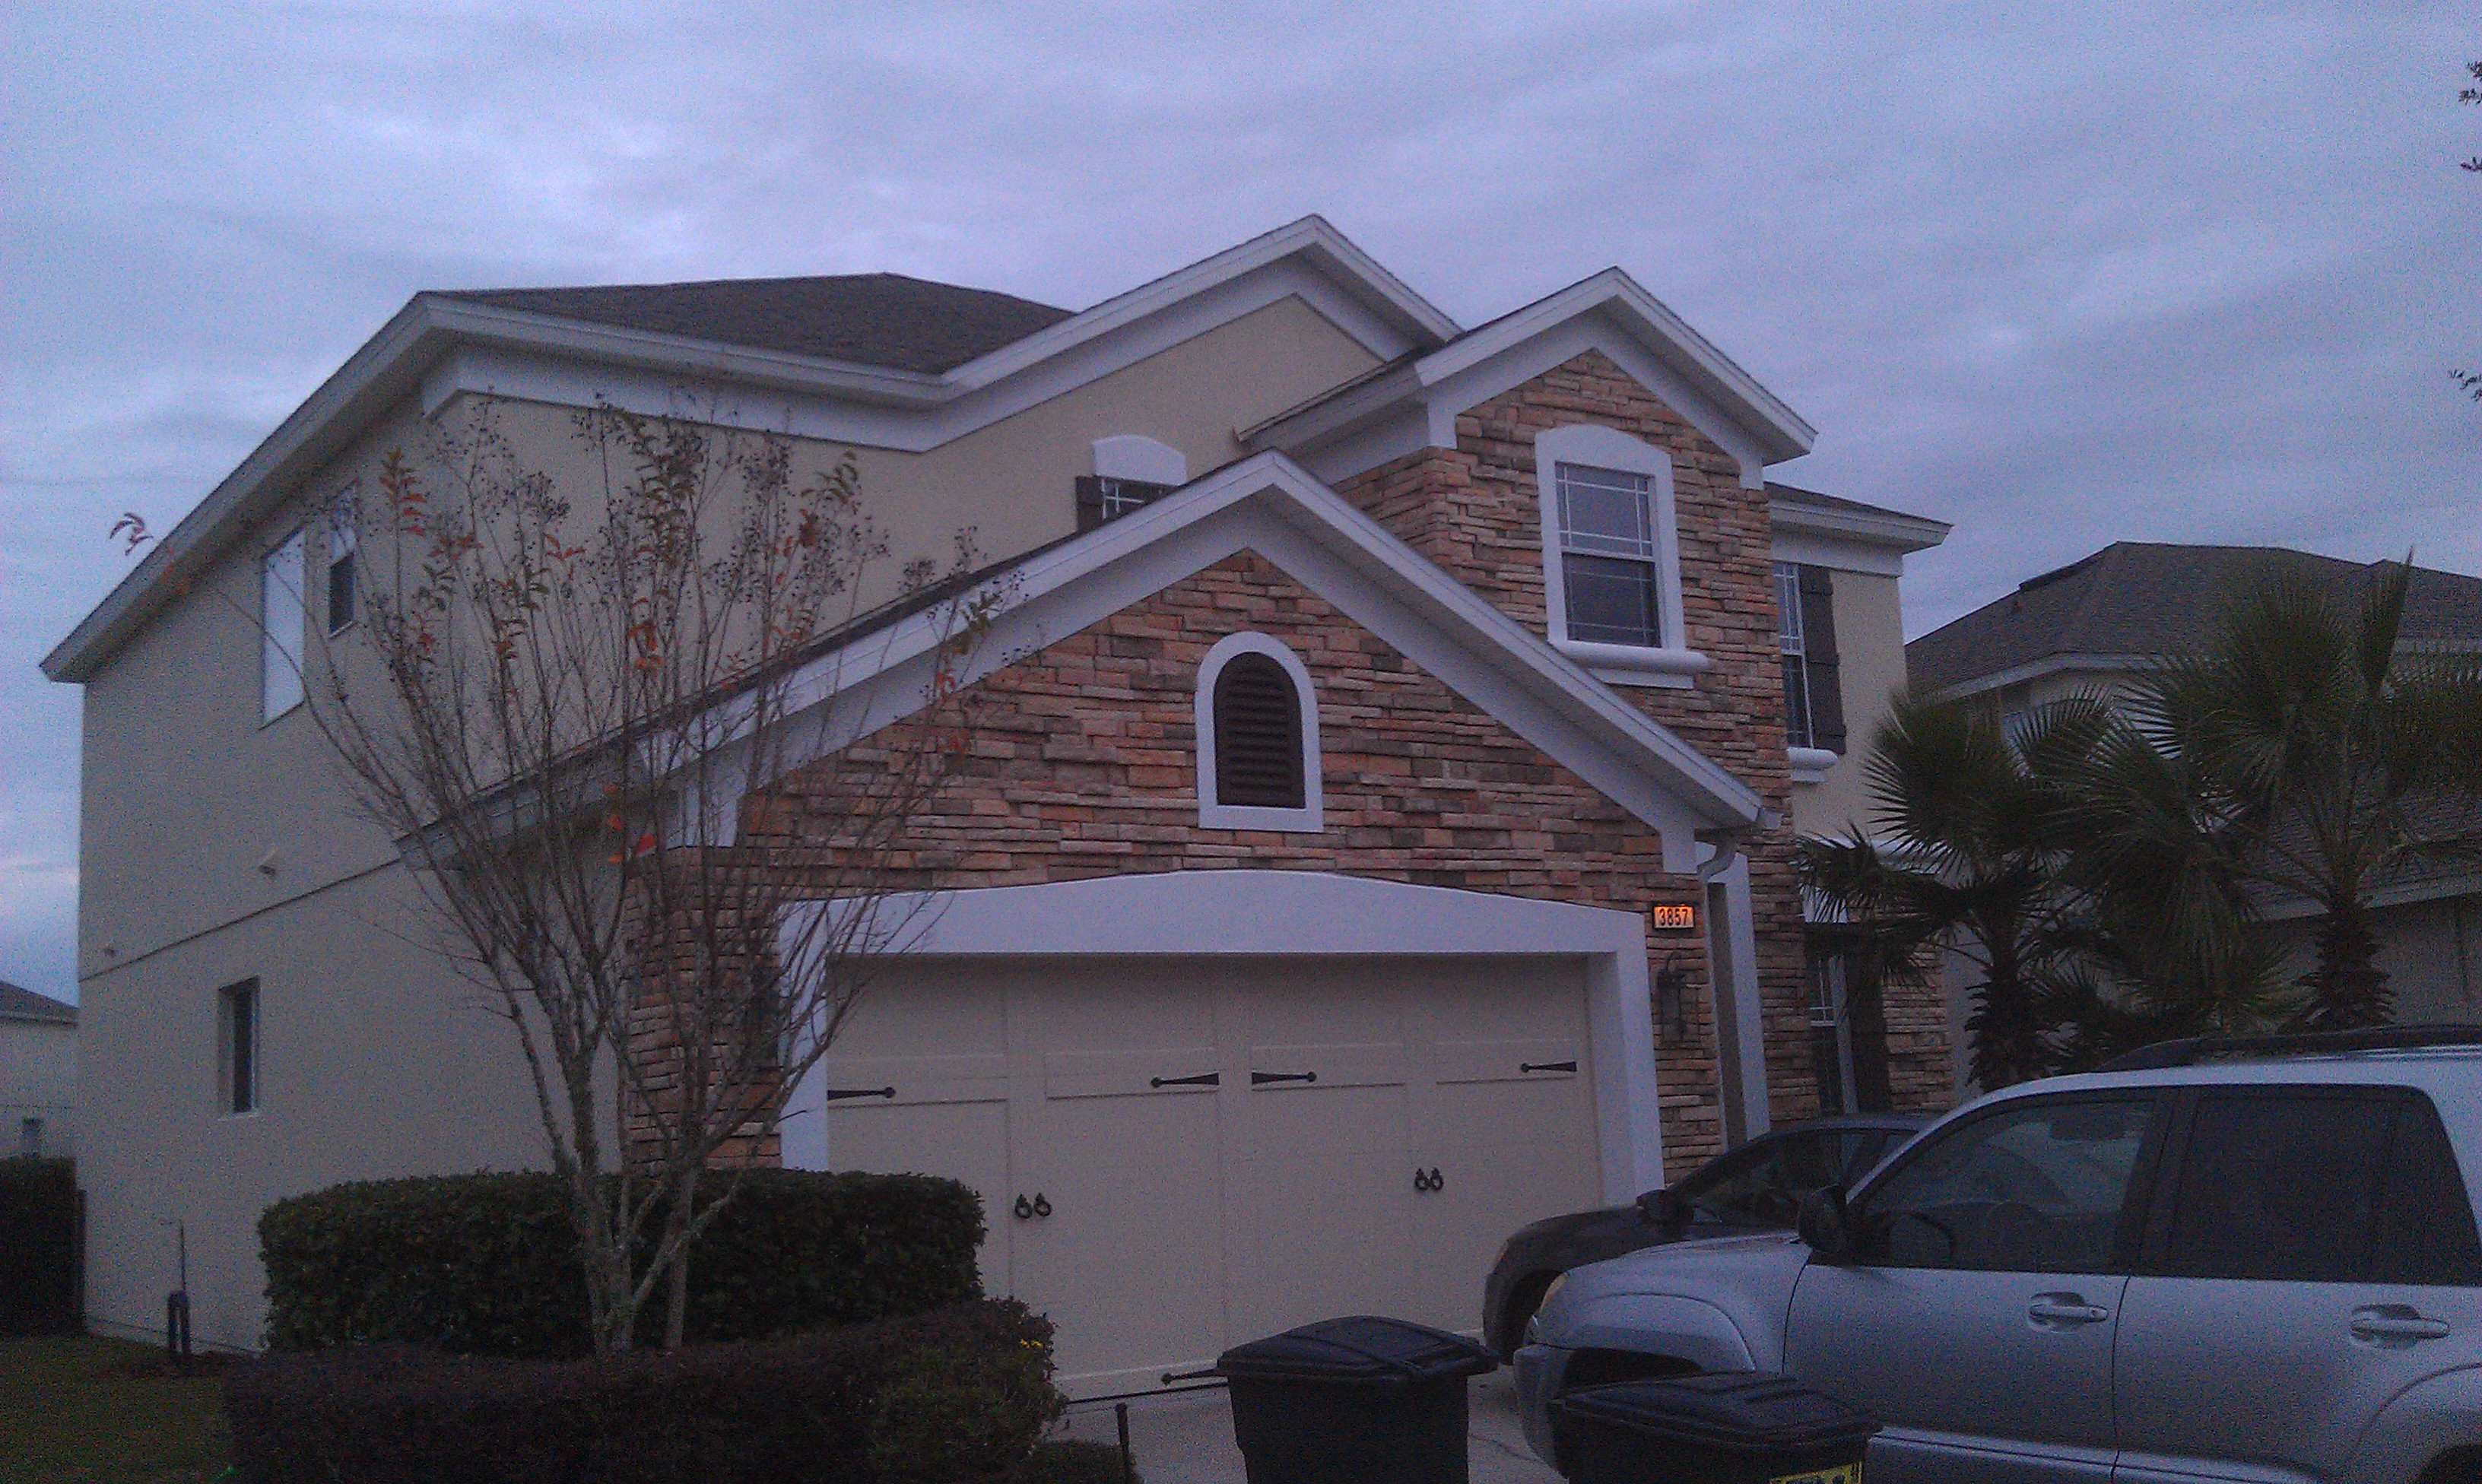 Exterior painting contractor for jacksonville home projects for Exterior house painting jacksonville fl